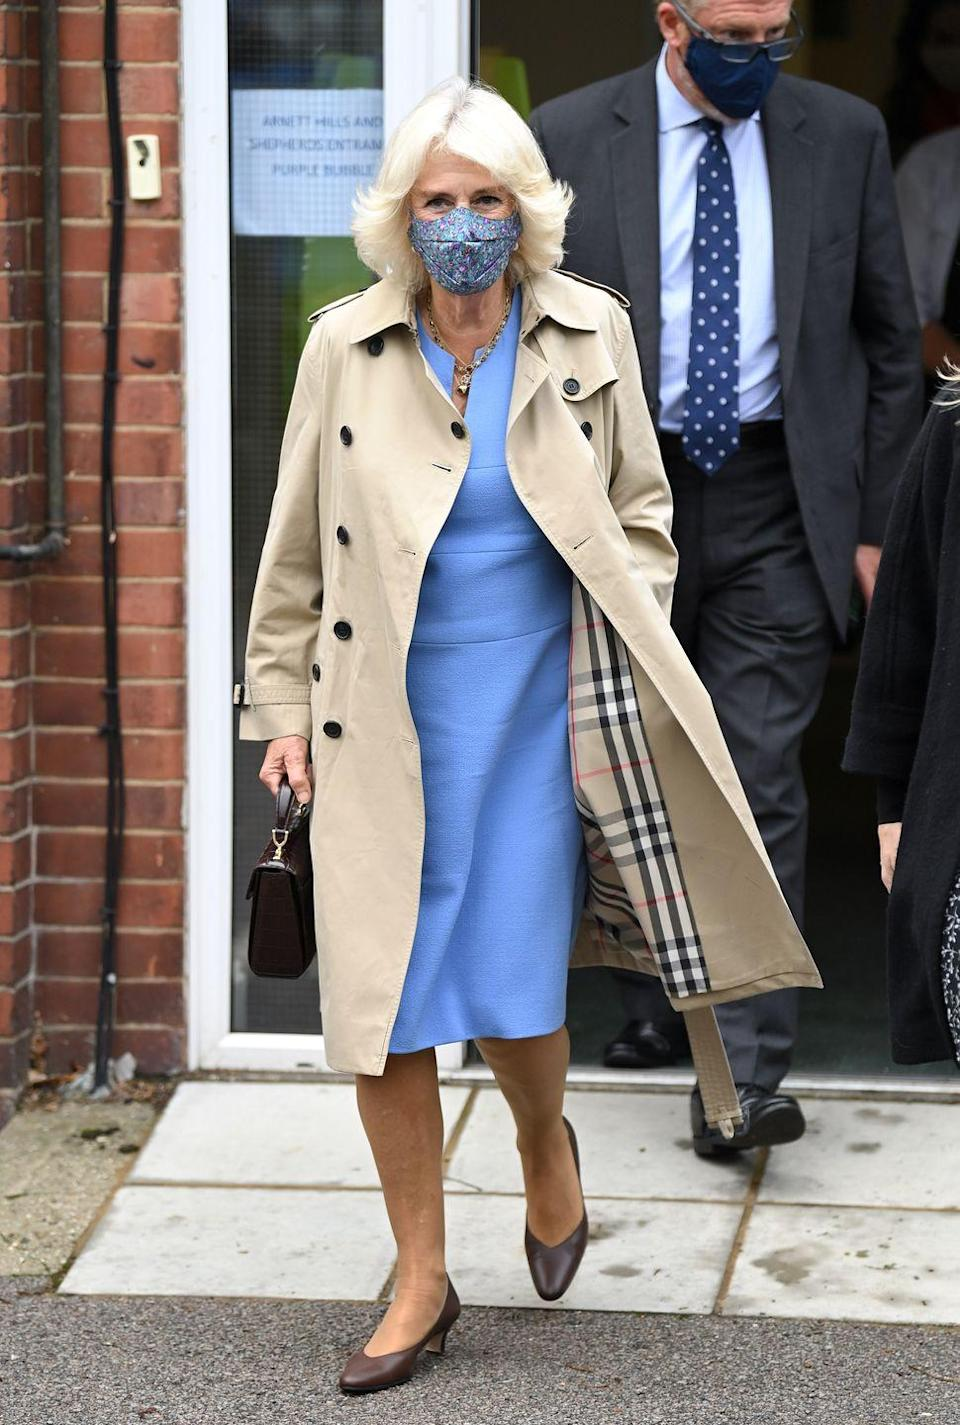 """<p>Few garments are quite as characteristically British as <a href=""""https://www.townandcountrymag.com/style/fashion-trends/g34360257/meghan-markle-kate-middleton-royal-trench-outfit-photos/"""" rel=""""nofollow noopener"""" target=""""_blank"""" data-ylk=""""slk:the classic Burberry trench"""" class=""""link rapid-noclick-resp"""">the classic Burberry trench</a>. Camilla embraced this preppy look by pairing it with a powder blue dress and matching mask. </p>"""